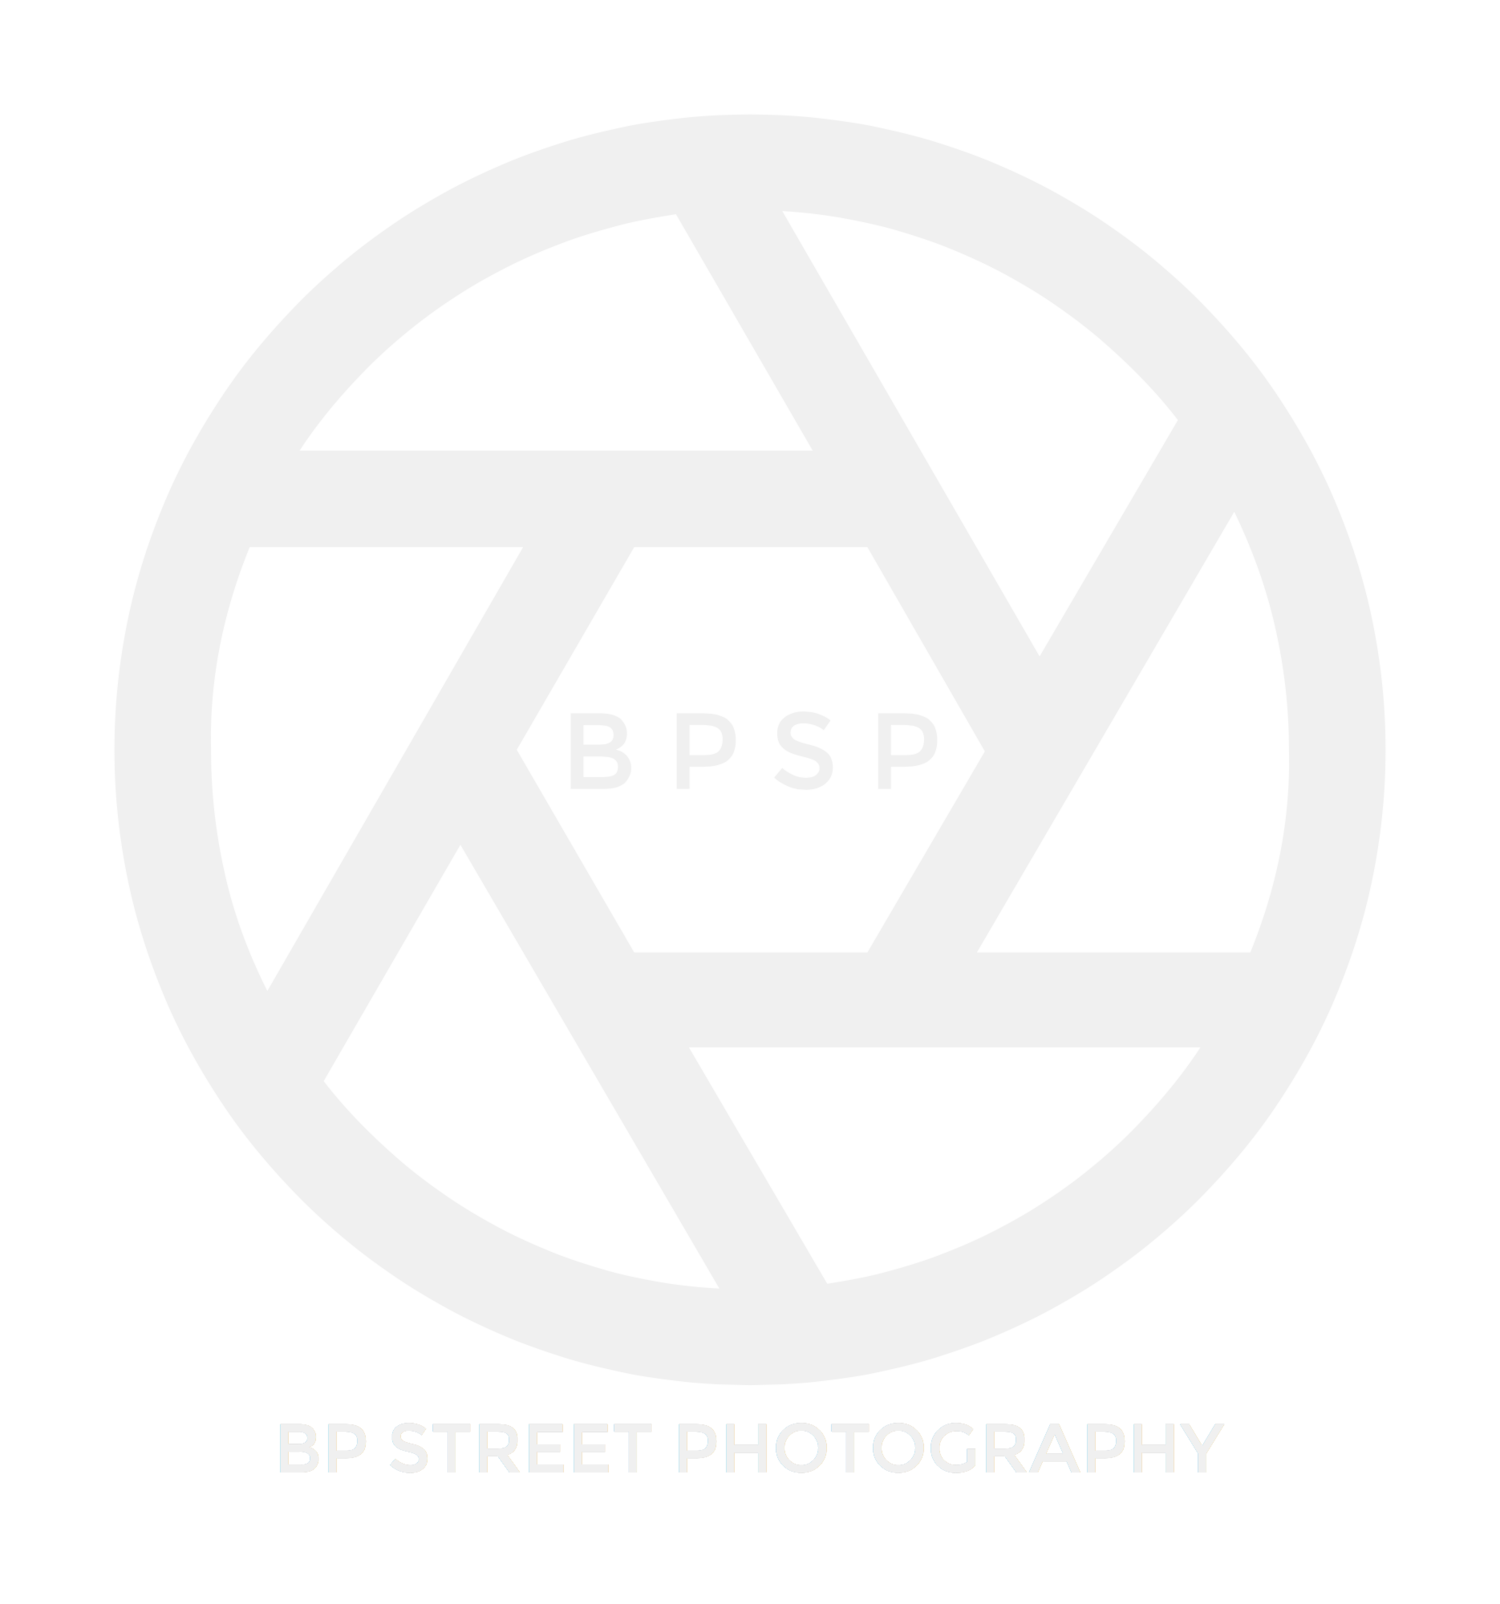 BP Street Photography